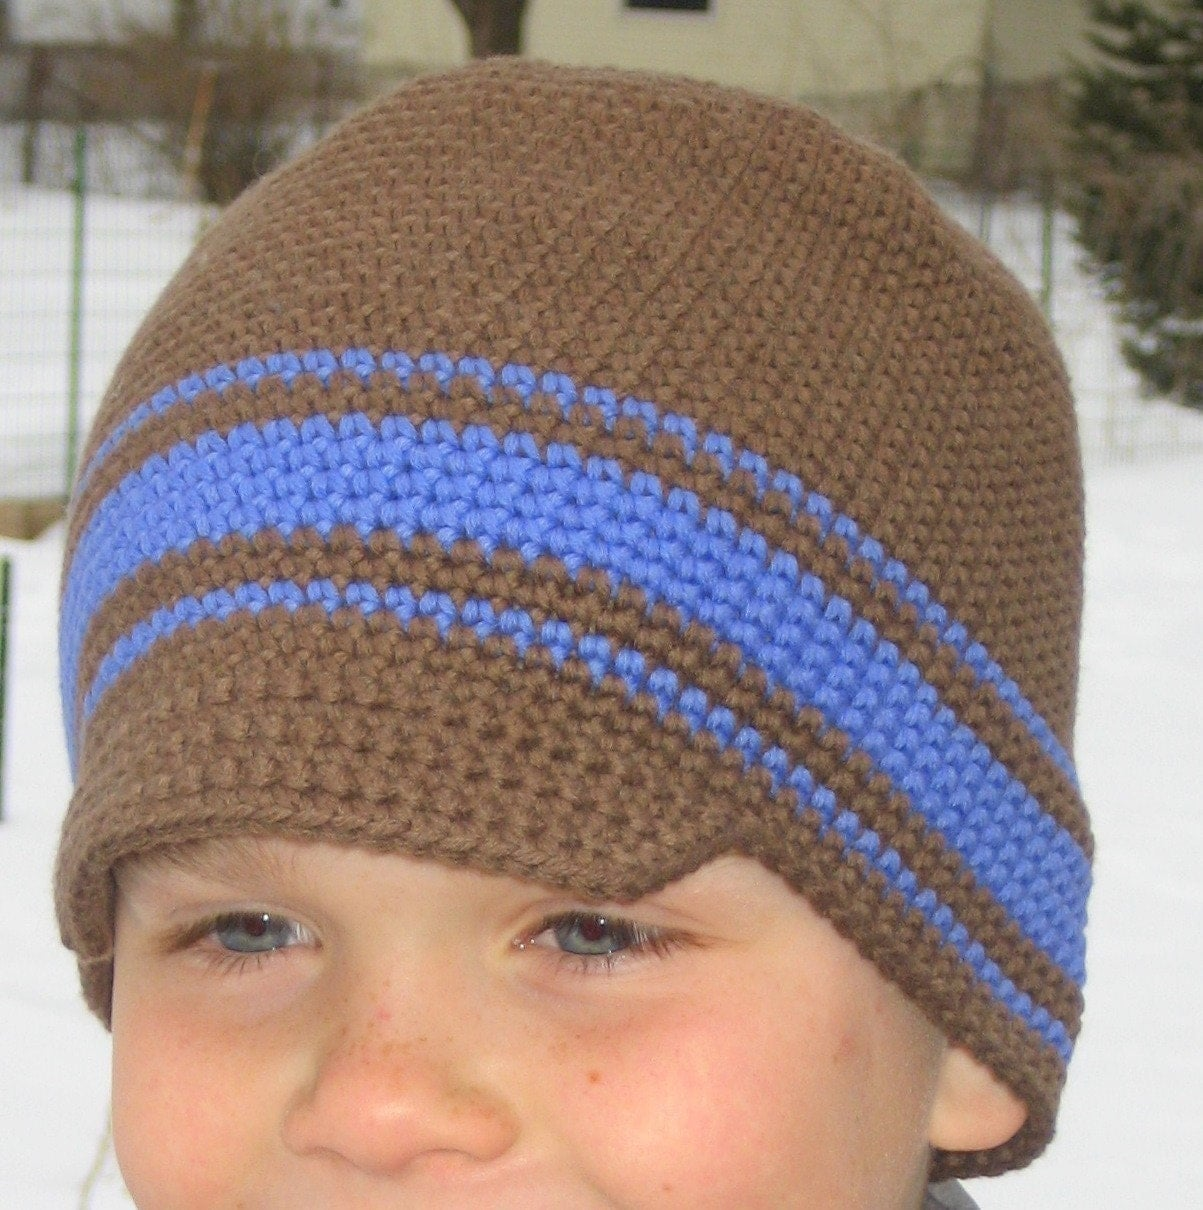 PATTERN SINGLE CROCHET BEANIE HAT SIZE 3-10 by AbsoluteKnits